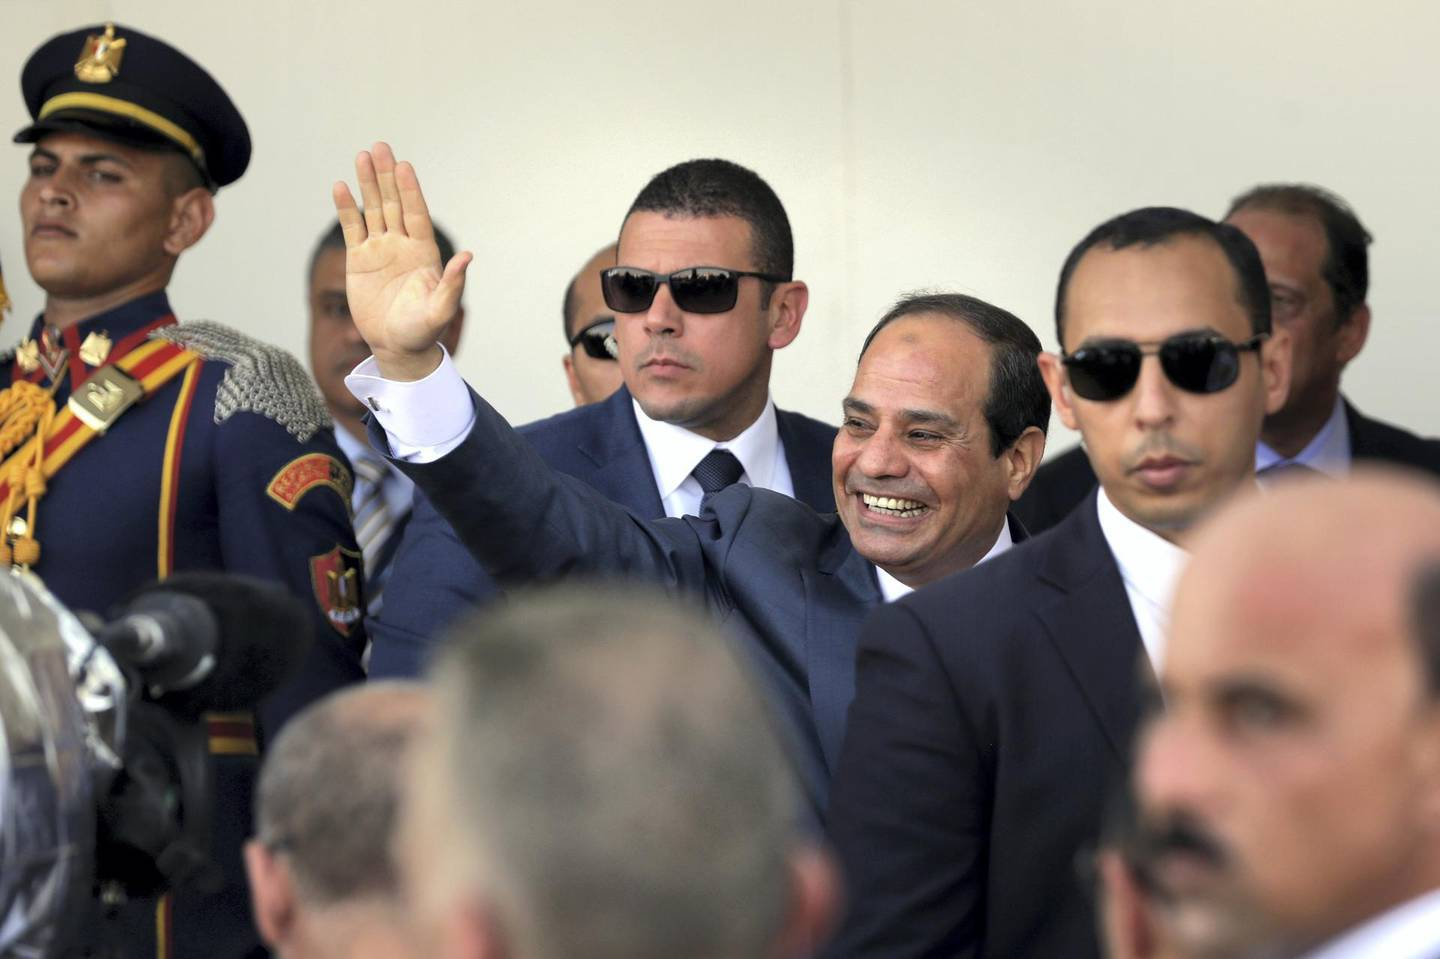 SUEZ, EGYPT - AUGUST 06:  President Abdel Fattah el-Sisi walks during the opening ceremony of the new Suez Canal expansion including a new 35km (22 mile) channel on August 6, 2015 in Suez, Egypt. The new channel of the Suez Canal was finished in a year at a cost of 8 billion USD and is designed to increase the speed and capacity of ships.  The new branch is being celebrated as a major nationalist project. (Photo by David Degner/Getty Images).